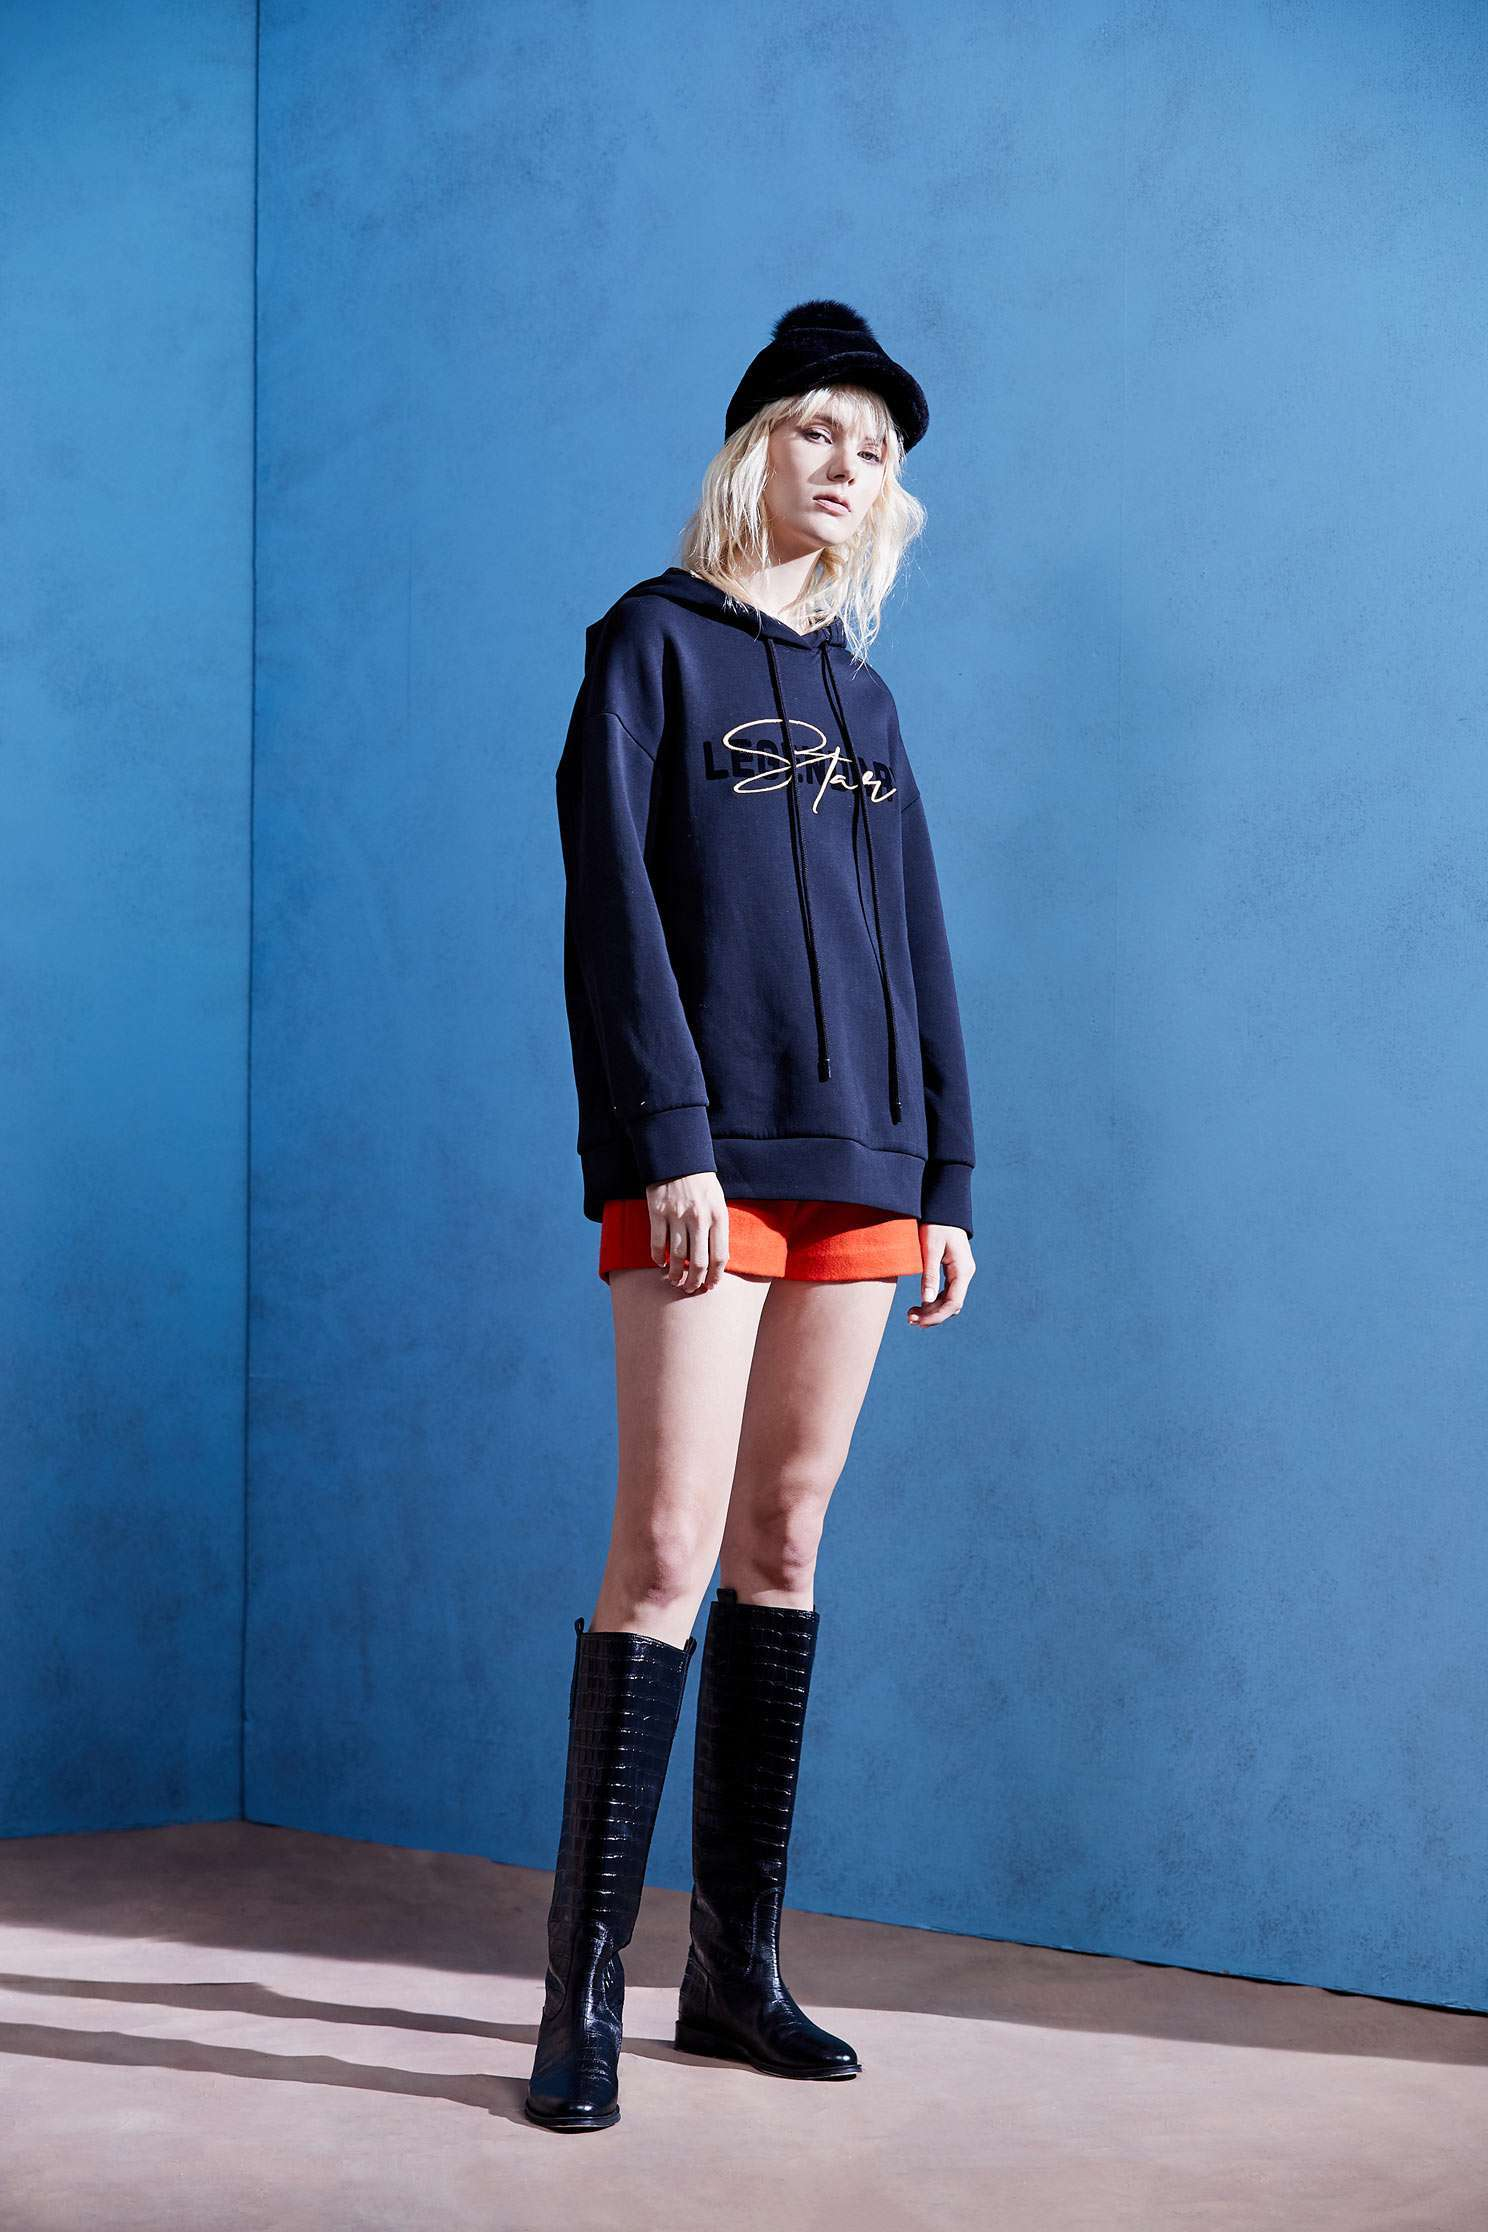 Basic embroidered hat T,embroidery,刺繡上衣,Hoodie Top,embroidered,繡花上衣,Long top,長袖上衣,黑色上衣